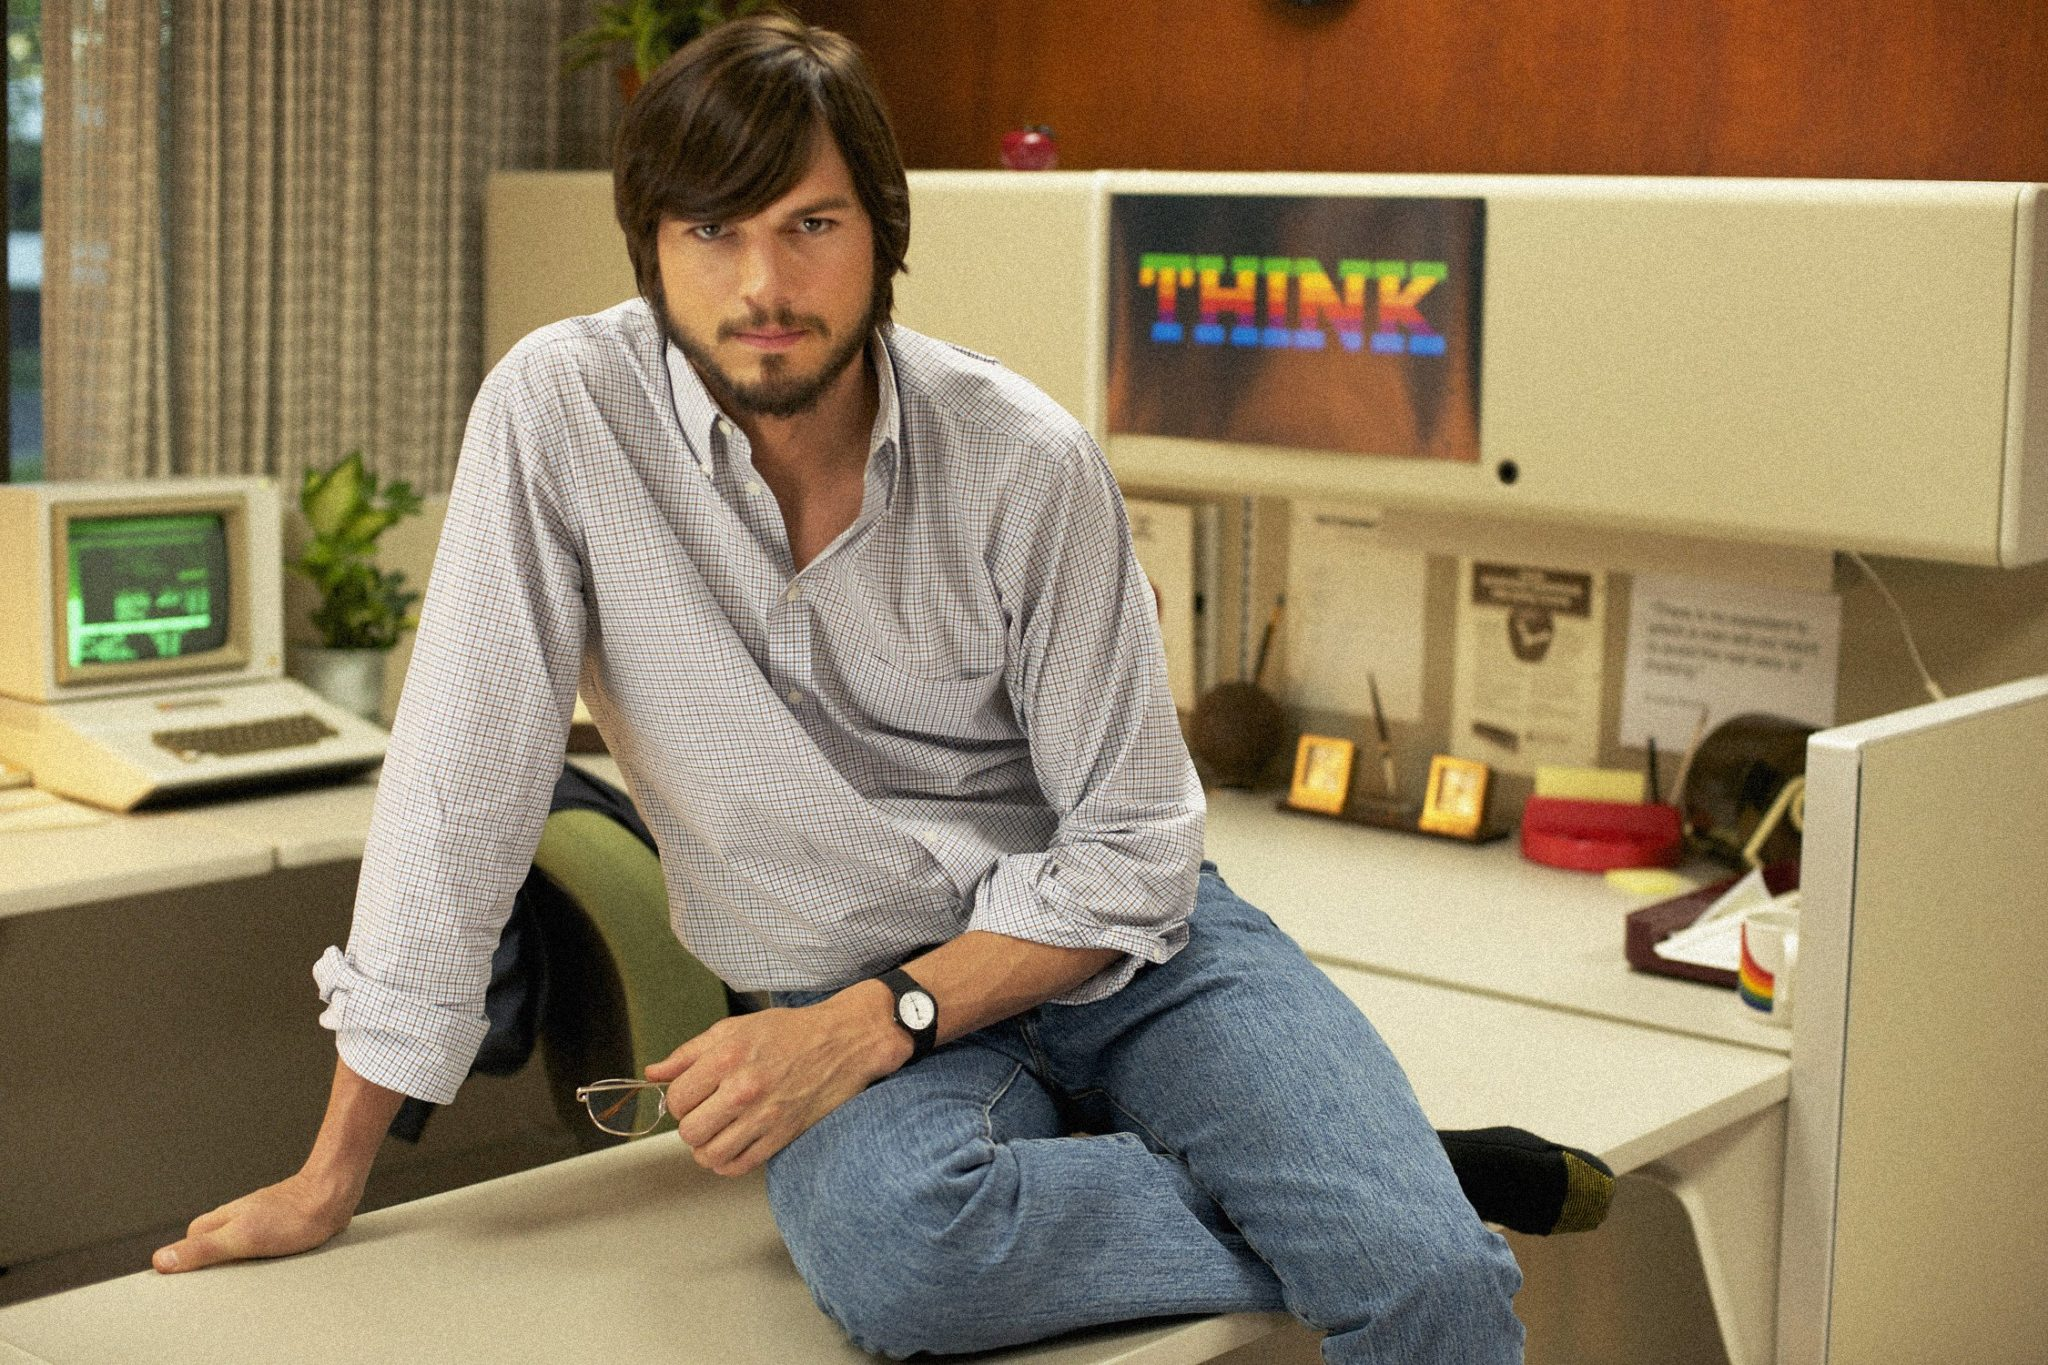 Ashton Kutcher/Steve Jobs